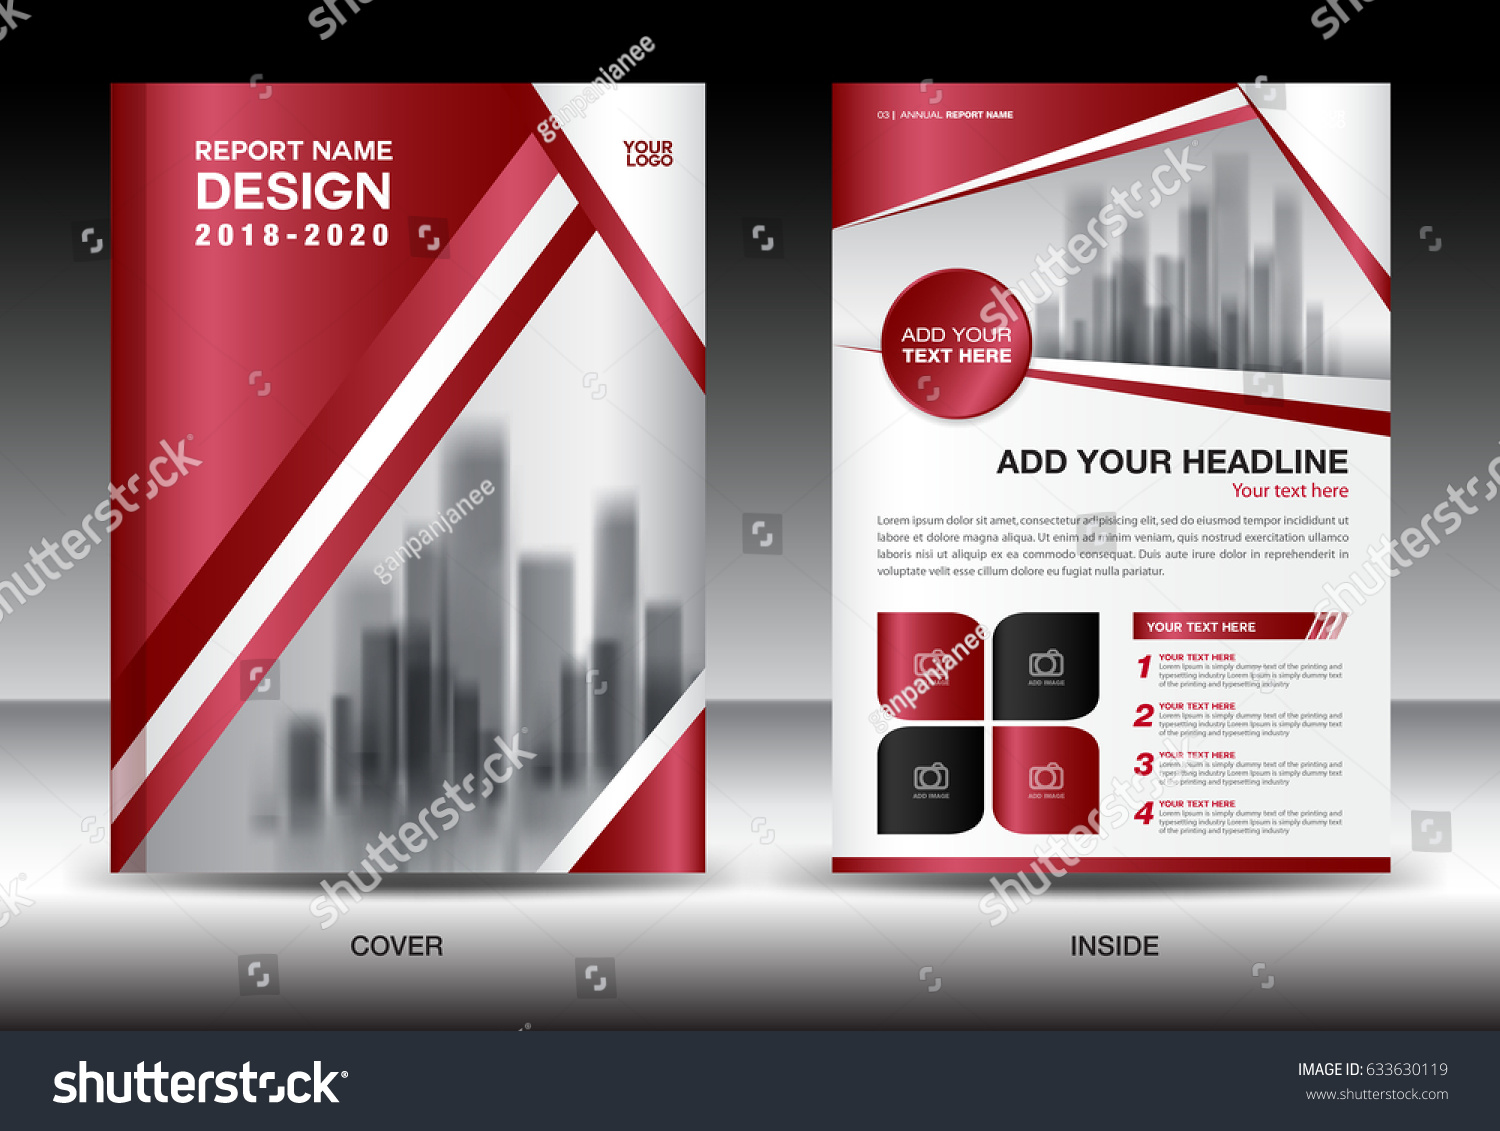 business brochure flyer template red cover のベクター画像素材